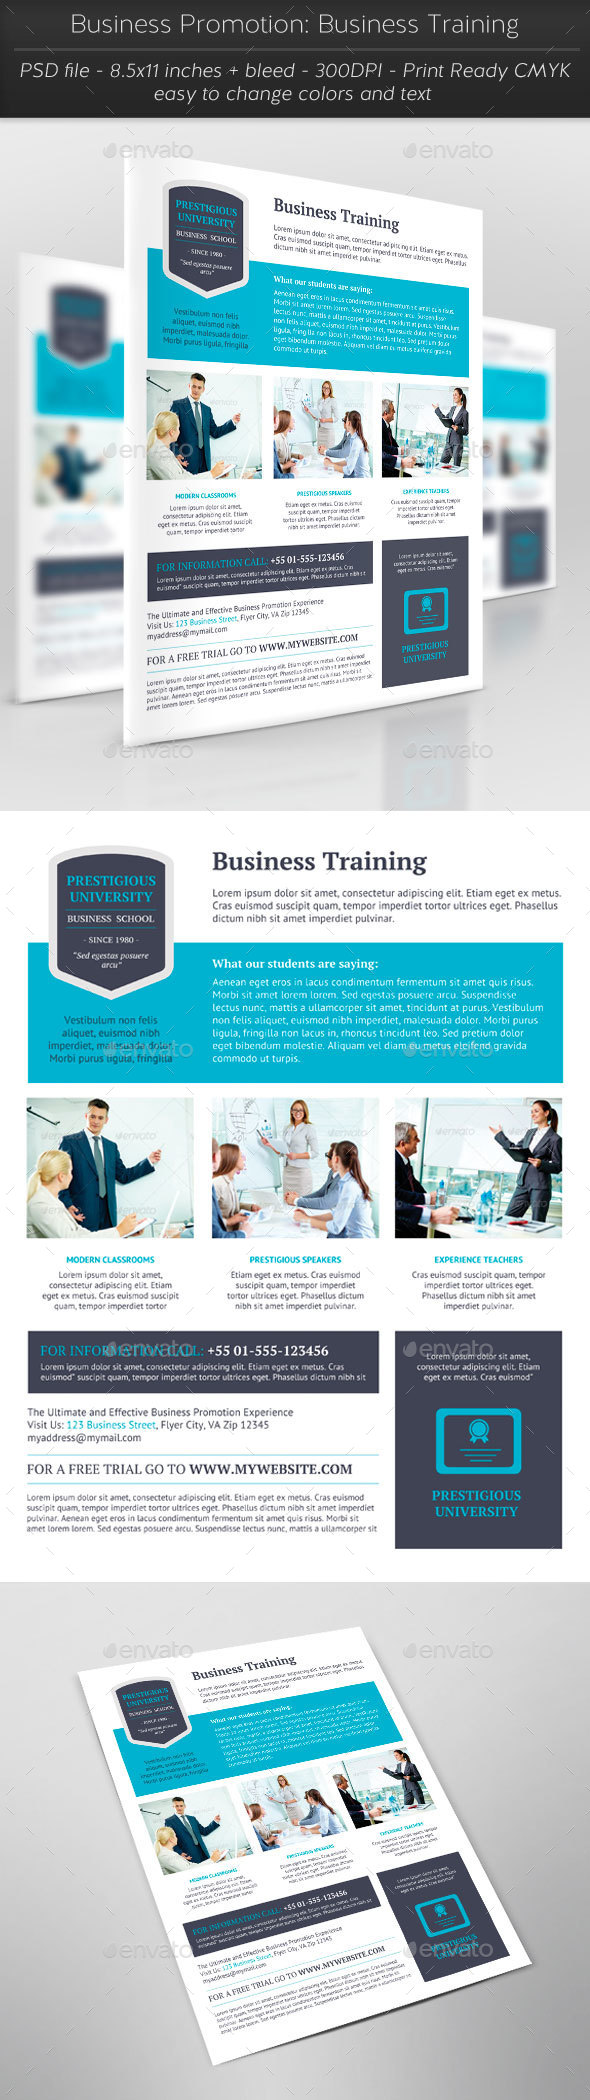 Business Promotion Business Training